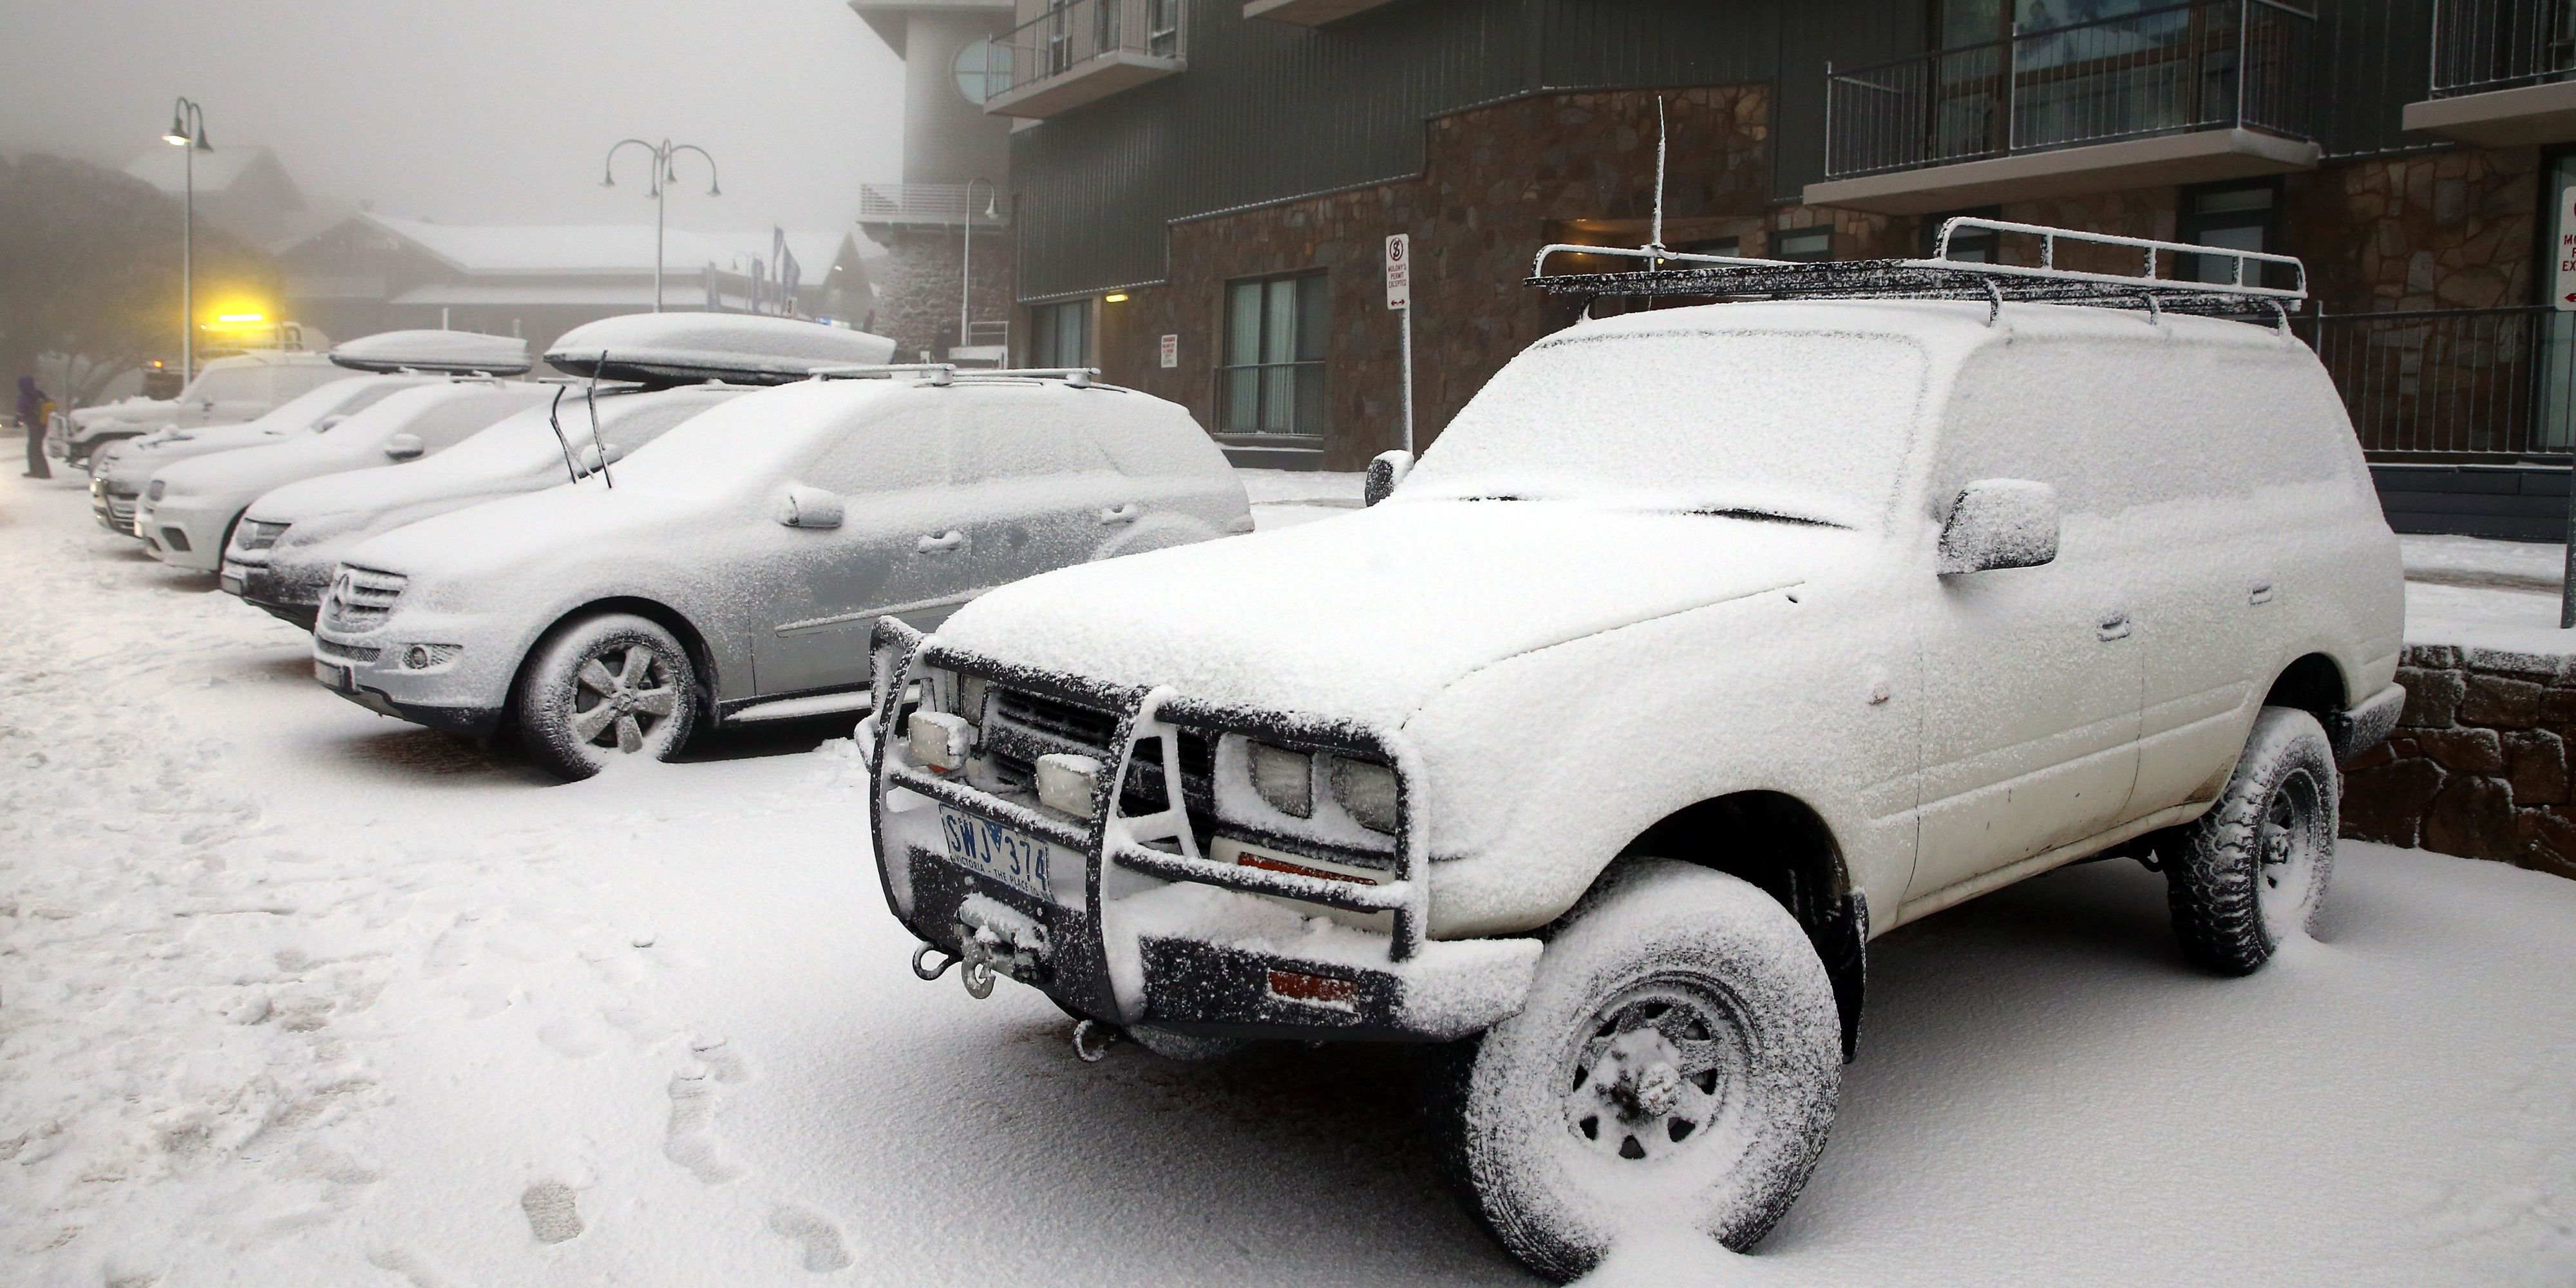 Warming Up Your Car in the Cold Just Harms the Engine